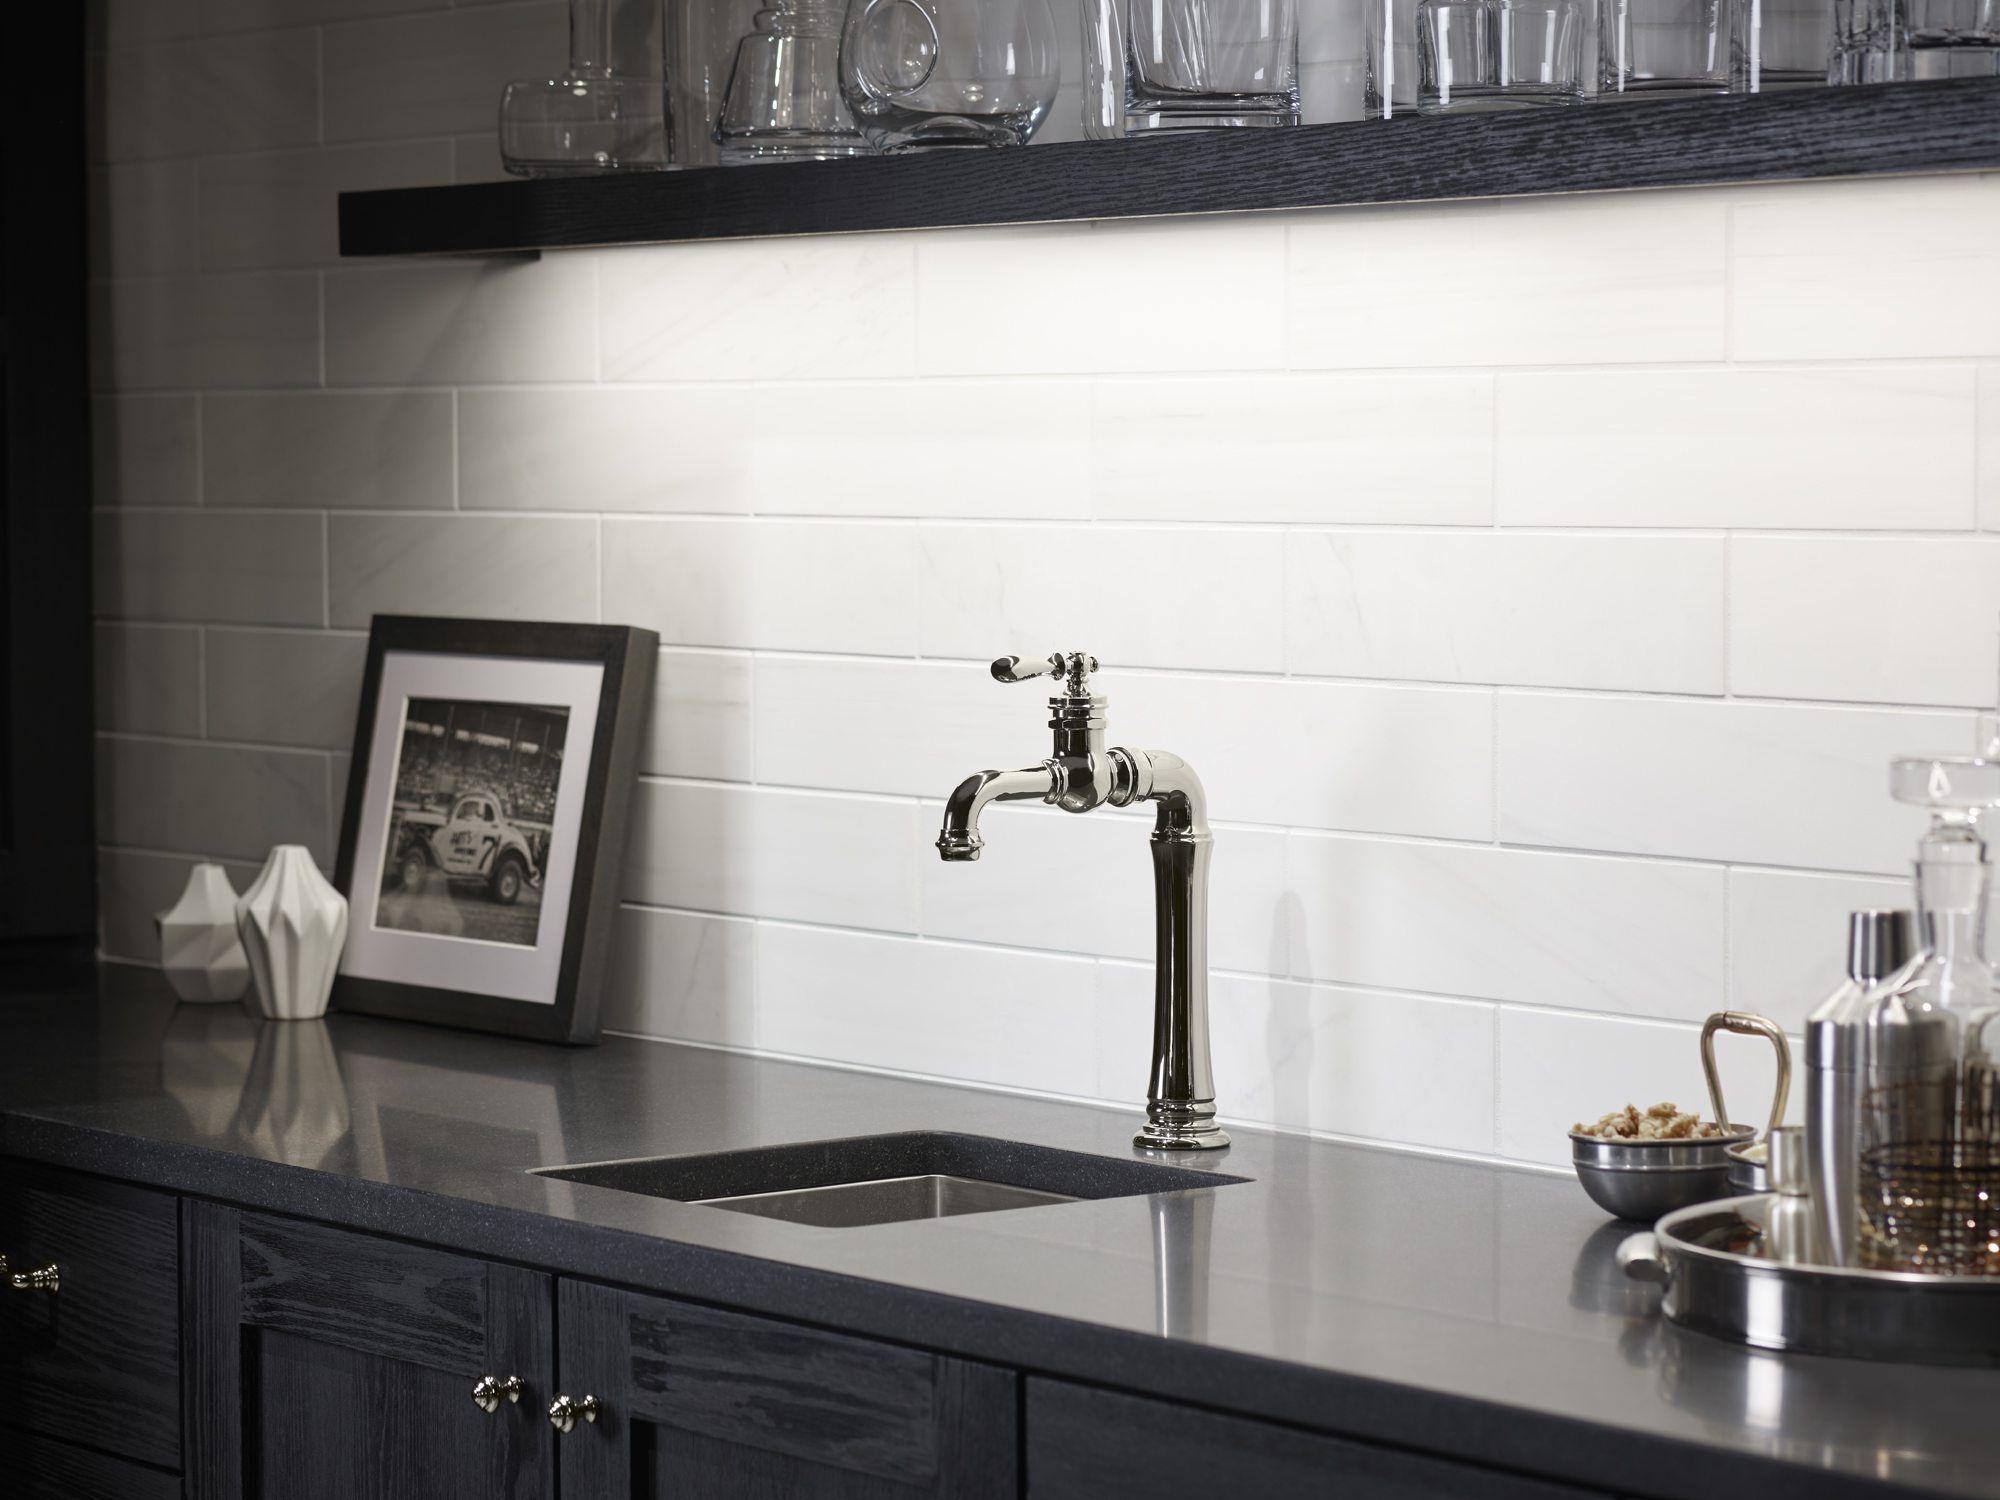 Artifacts Gentleman's bar faucet     Strive bar sink     Dolomite Corina     An ideal setup for the amateur mixologist, the Strive® sink and Artifacts® faucet duo combine to simplify drink prep and cleanup.